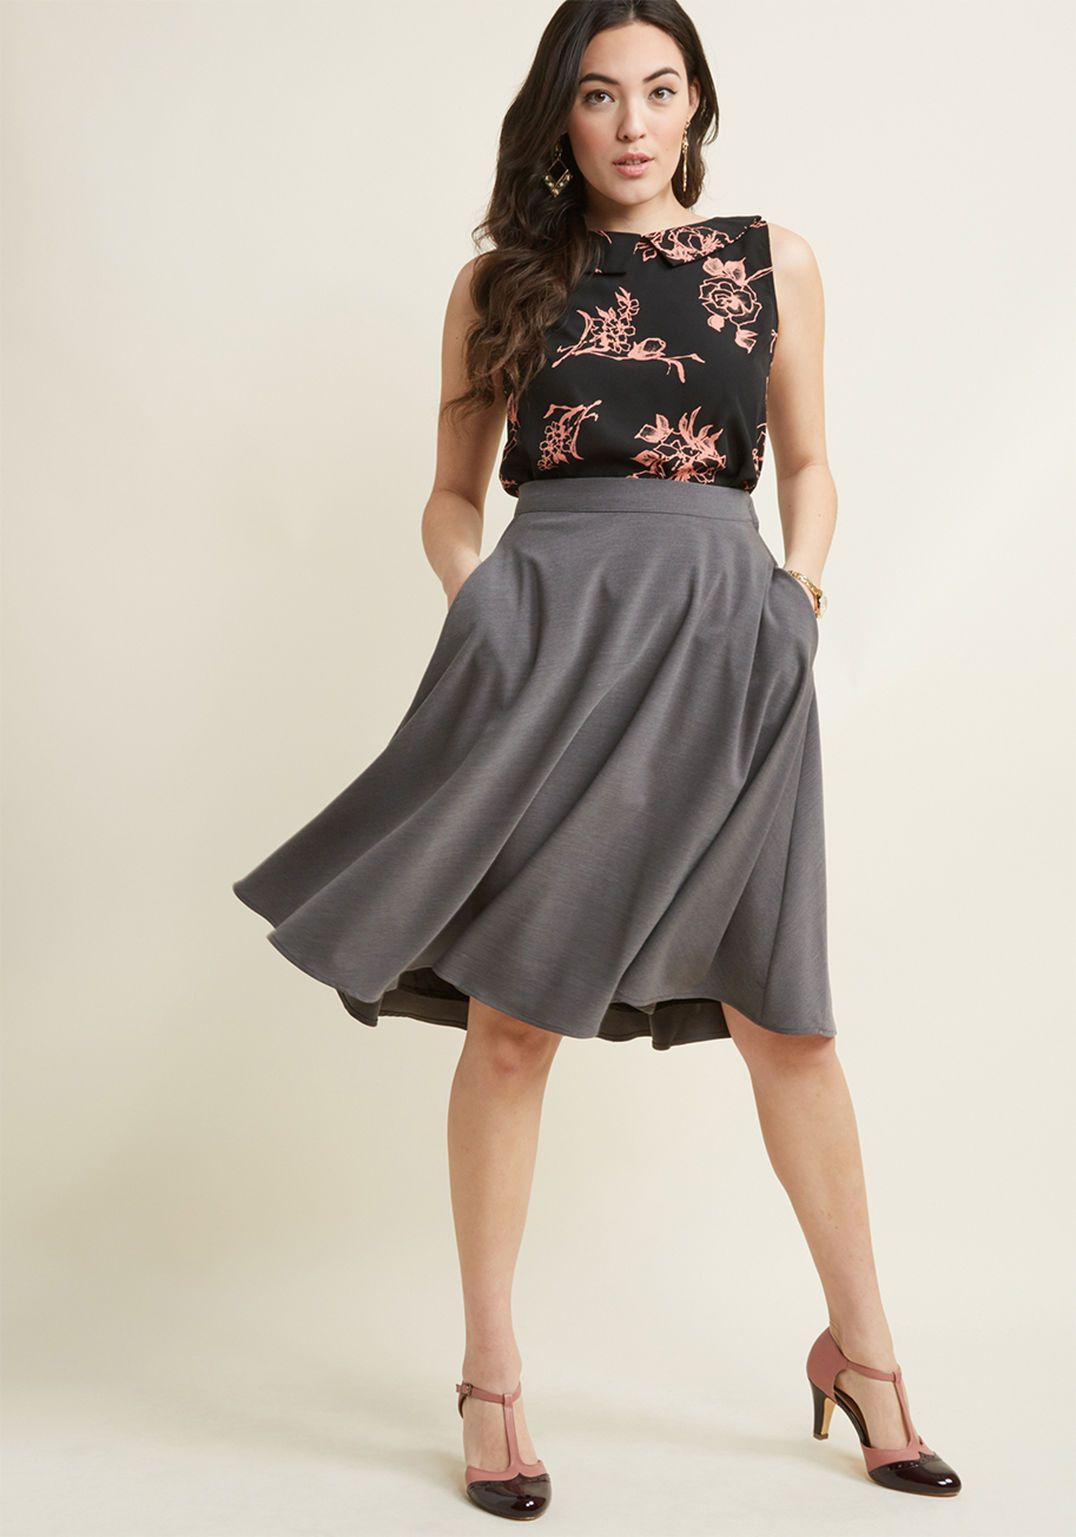 362f68095fffd8 Just This Sway A-Line Skirt in Carnation in 2019 | Business Casual ...